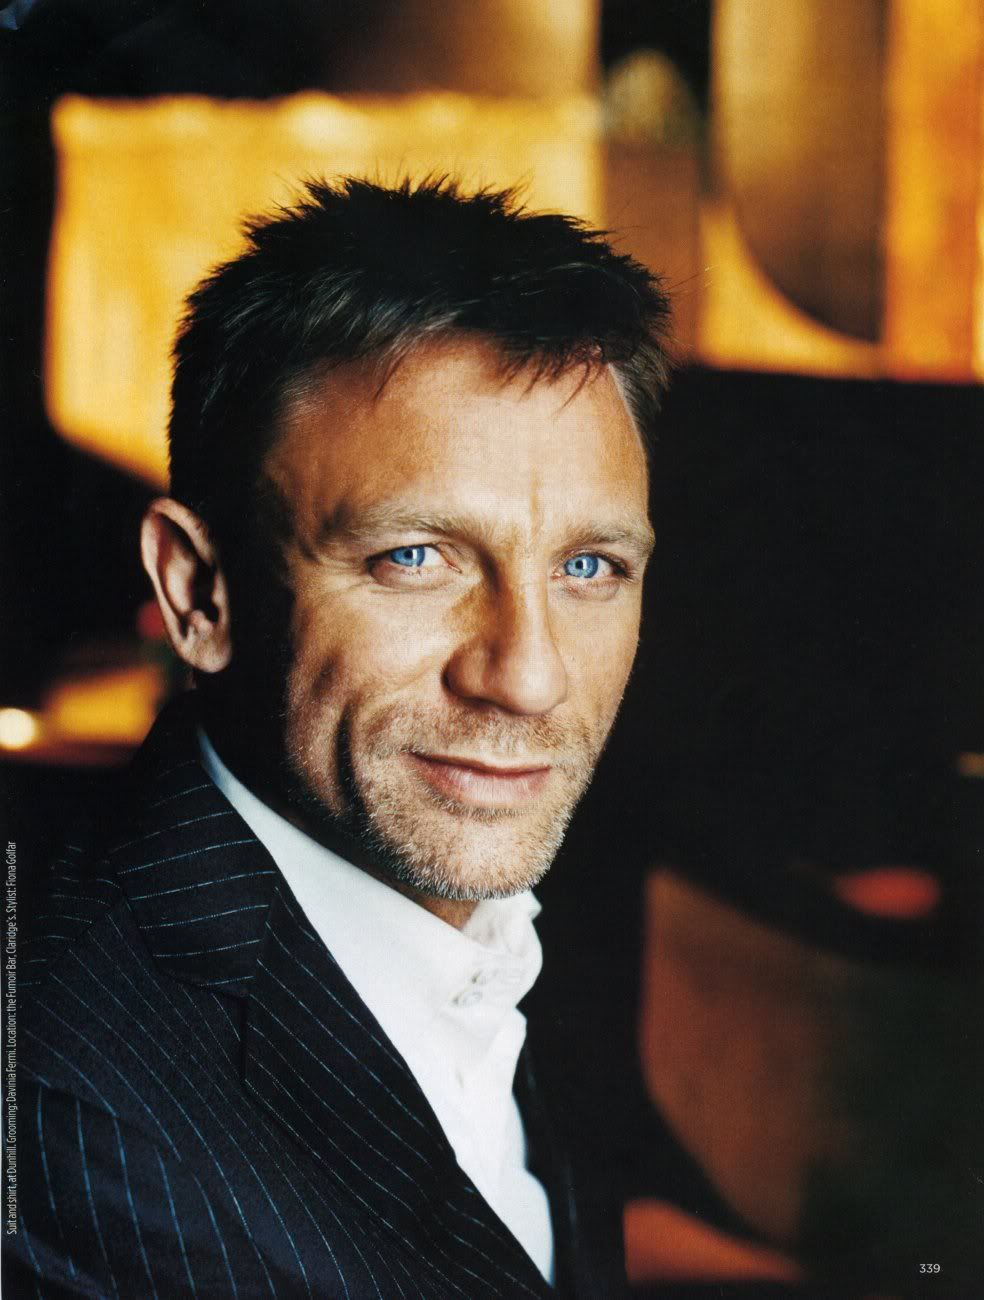 Daniel Craig. I KNOW he's old but I just have a major thing for him. And I seriously don't know what it is because at first glance i SHOULDNT BE ATTRACTED TO HIM. He's blond! With blue eyes! So not my type... sigh. so dreamy.